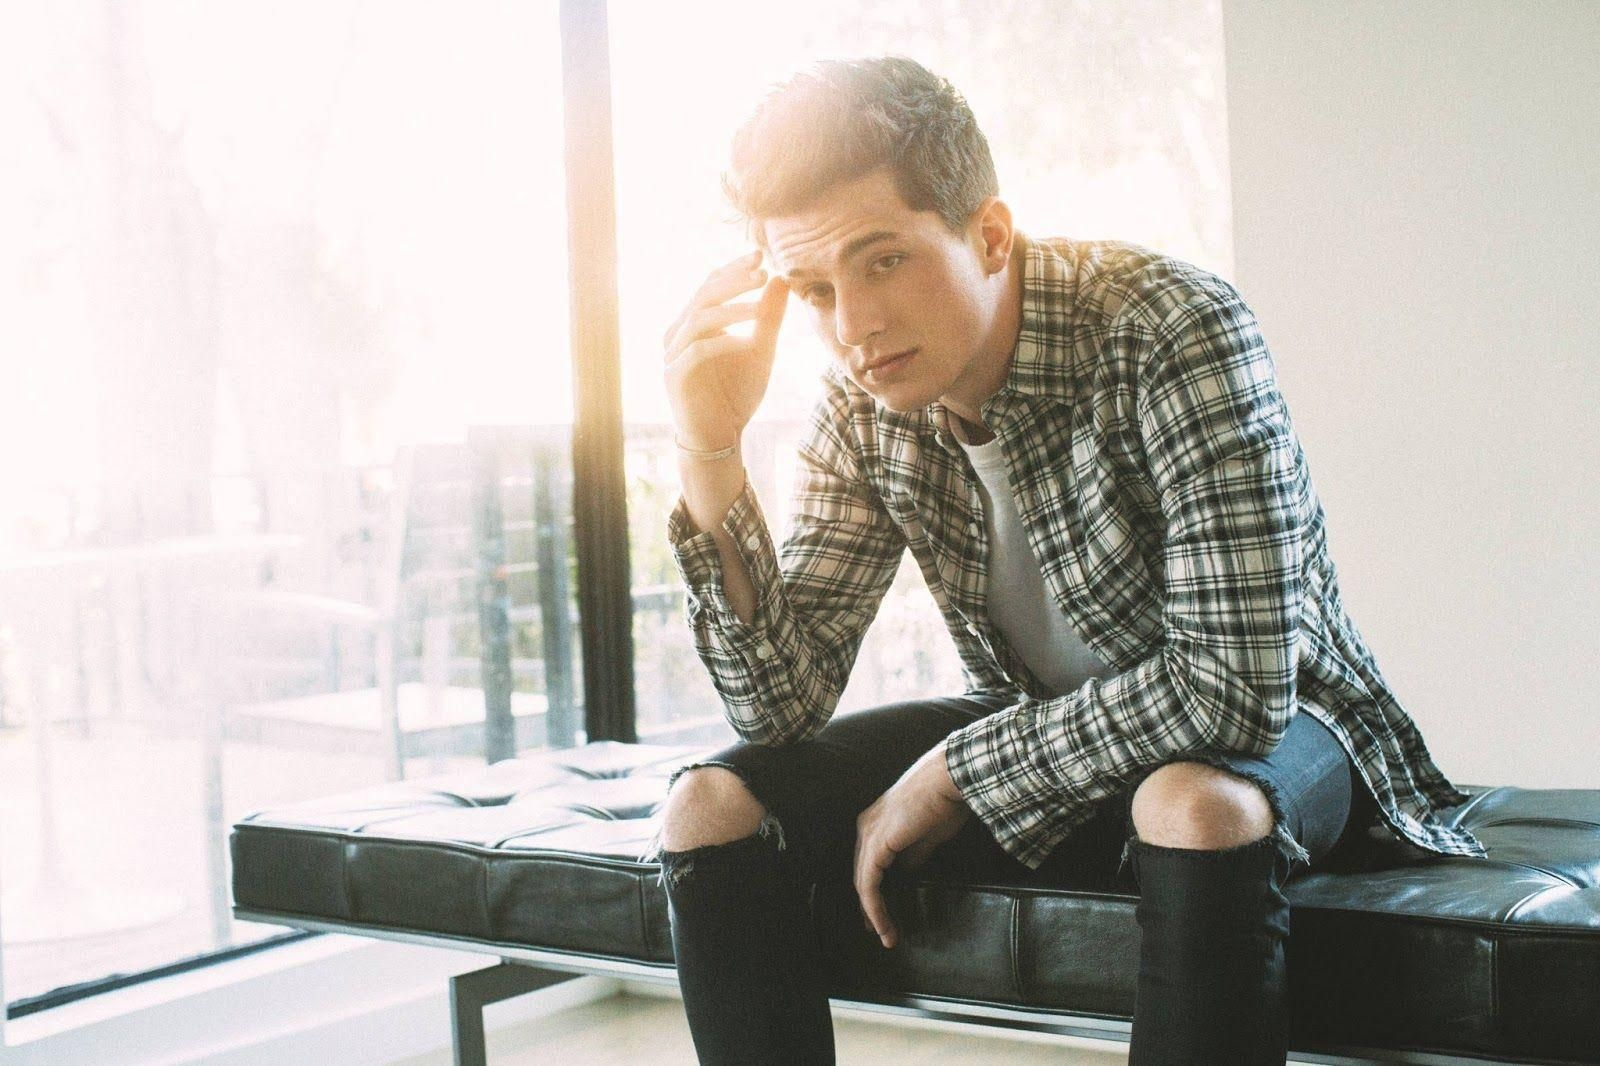 Charlie Puth Wallpapers Wallpaper Cave Charlie puth